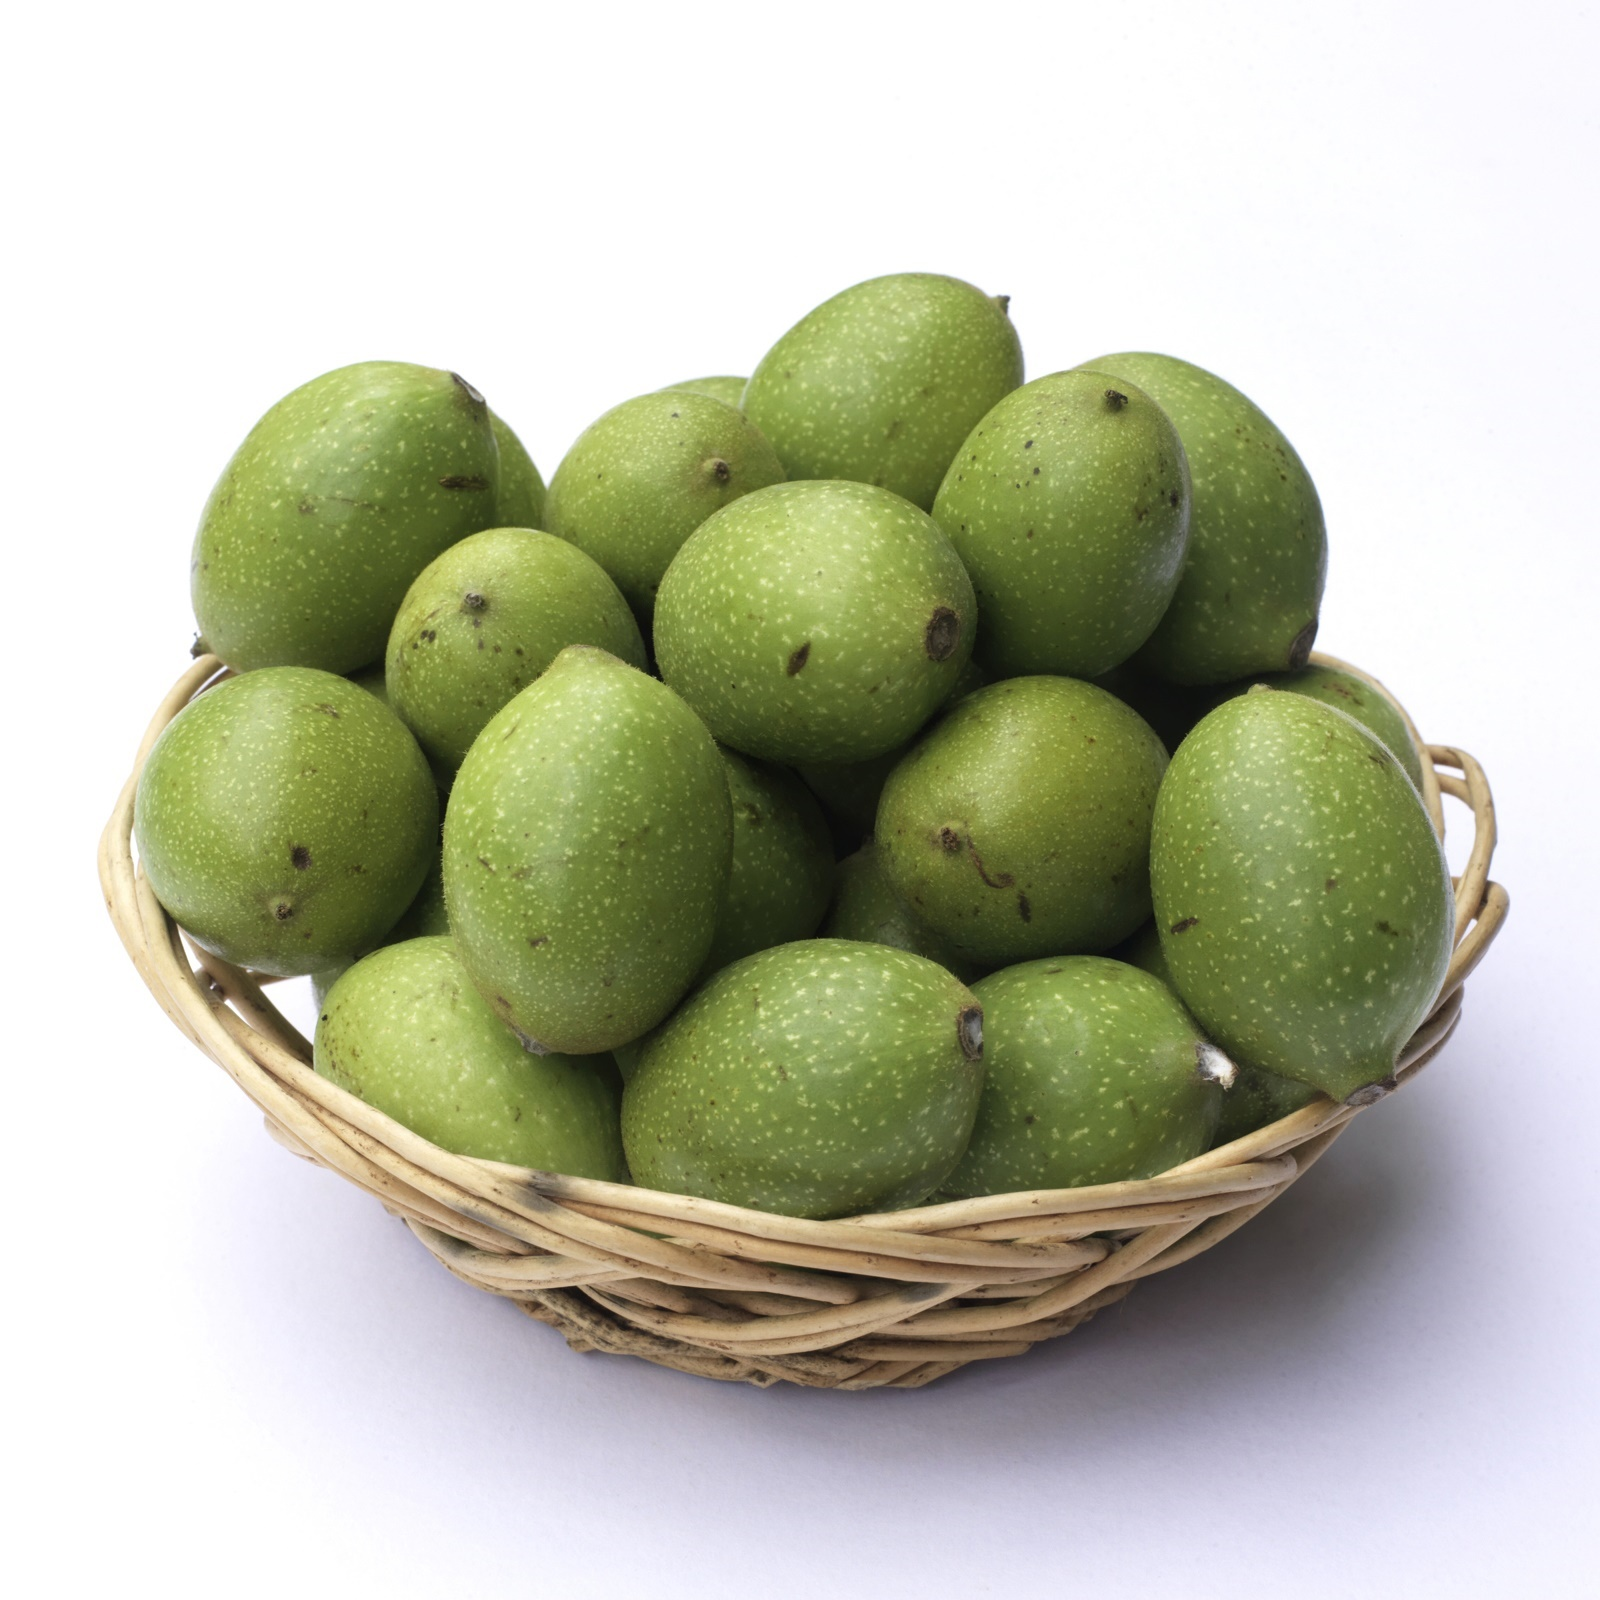 Fresh Green Walnuts for Pickling - The fresh green walnuts from Potash farm are available during a short seasonal two week window in July.